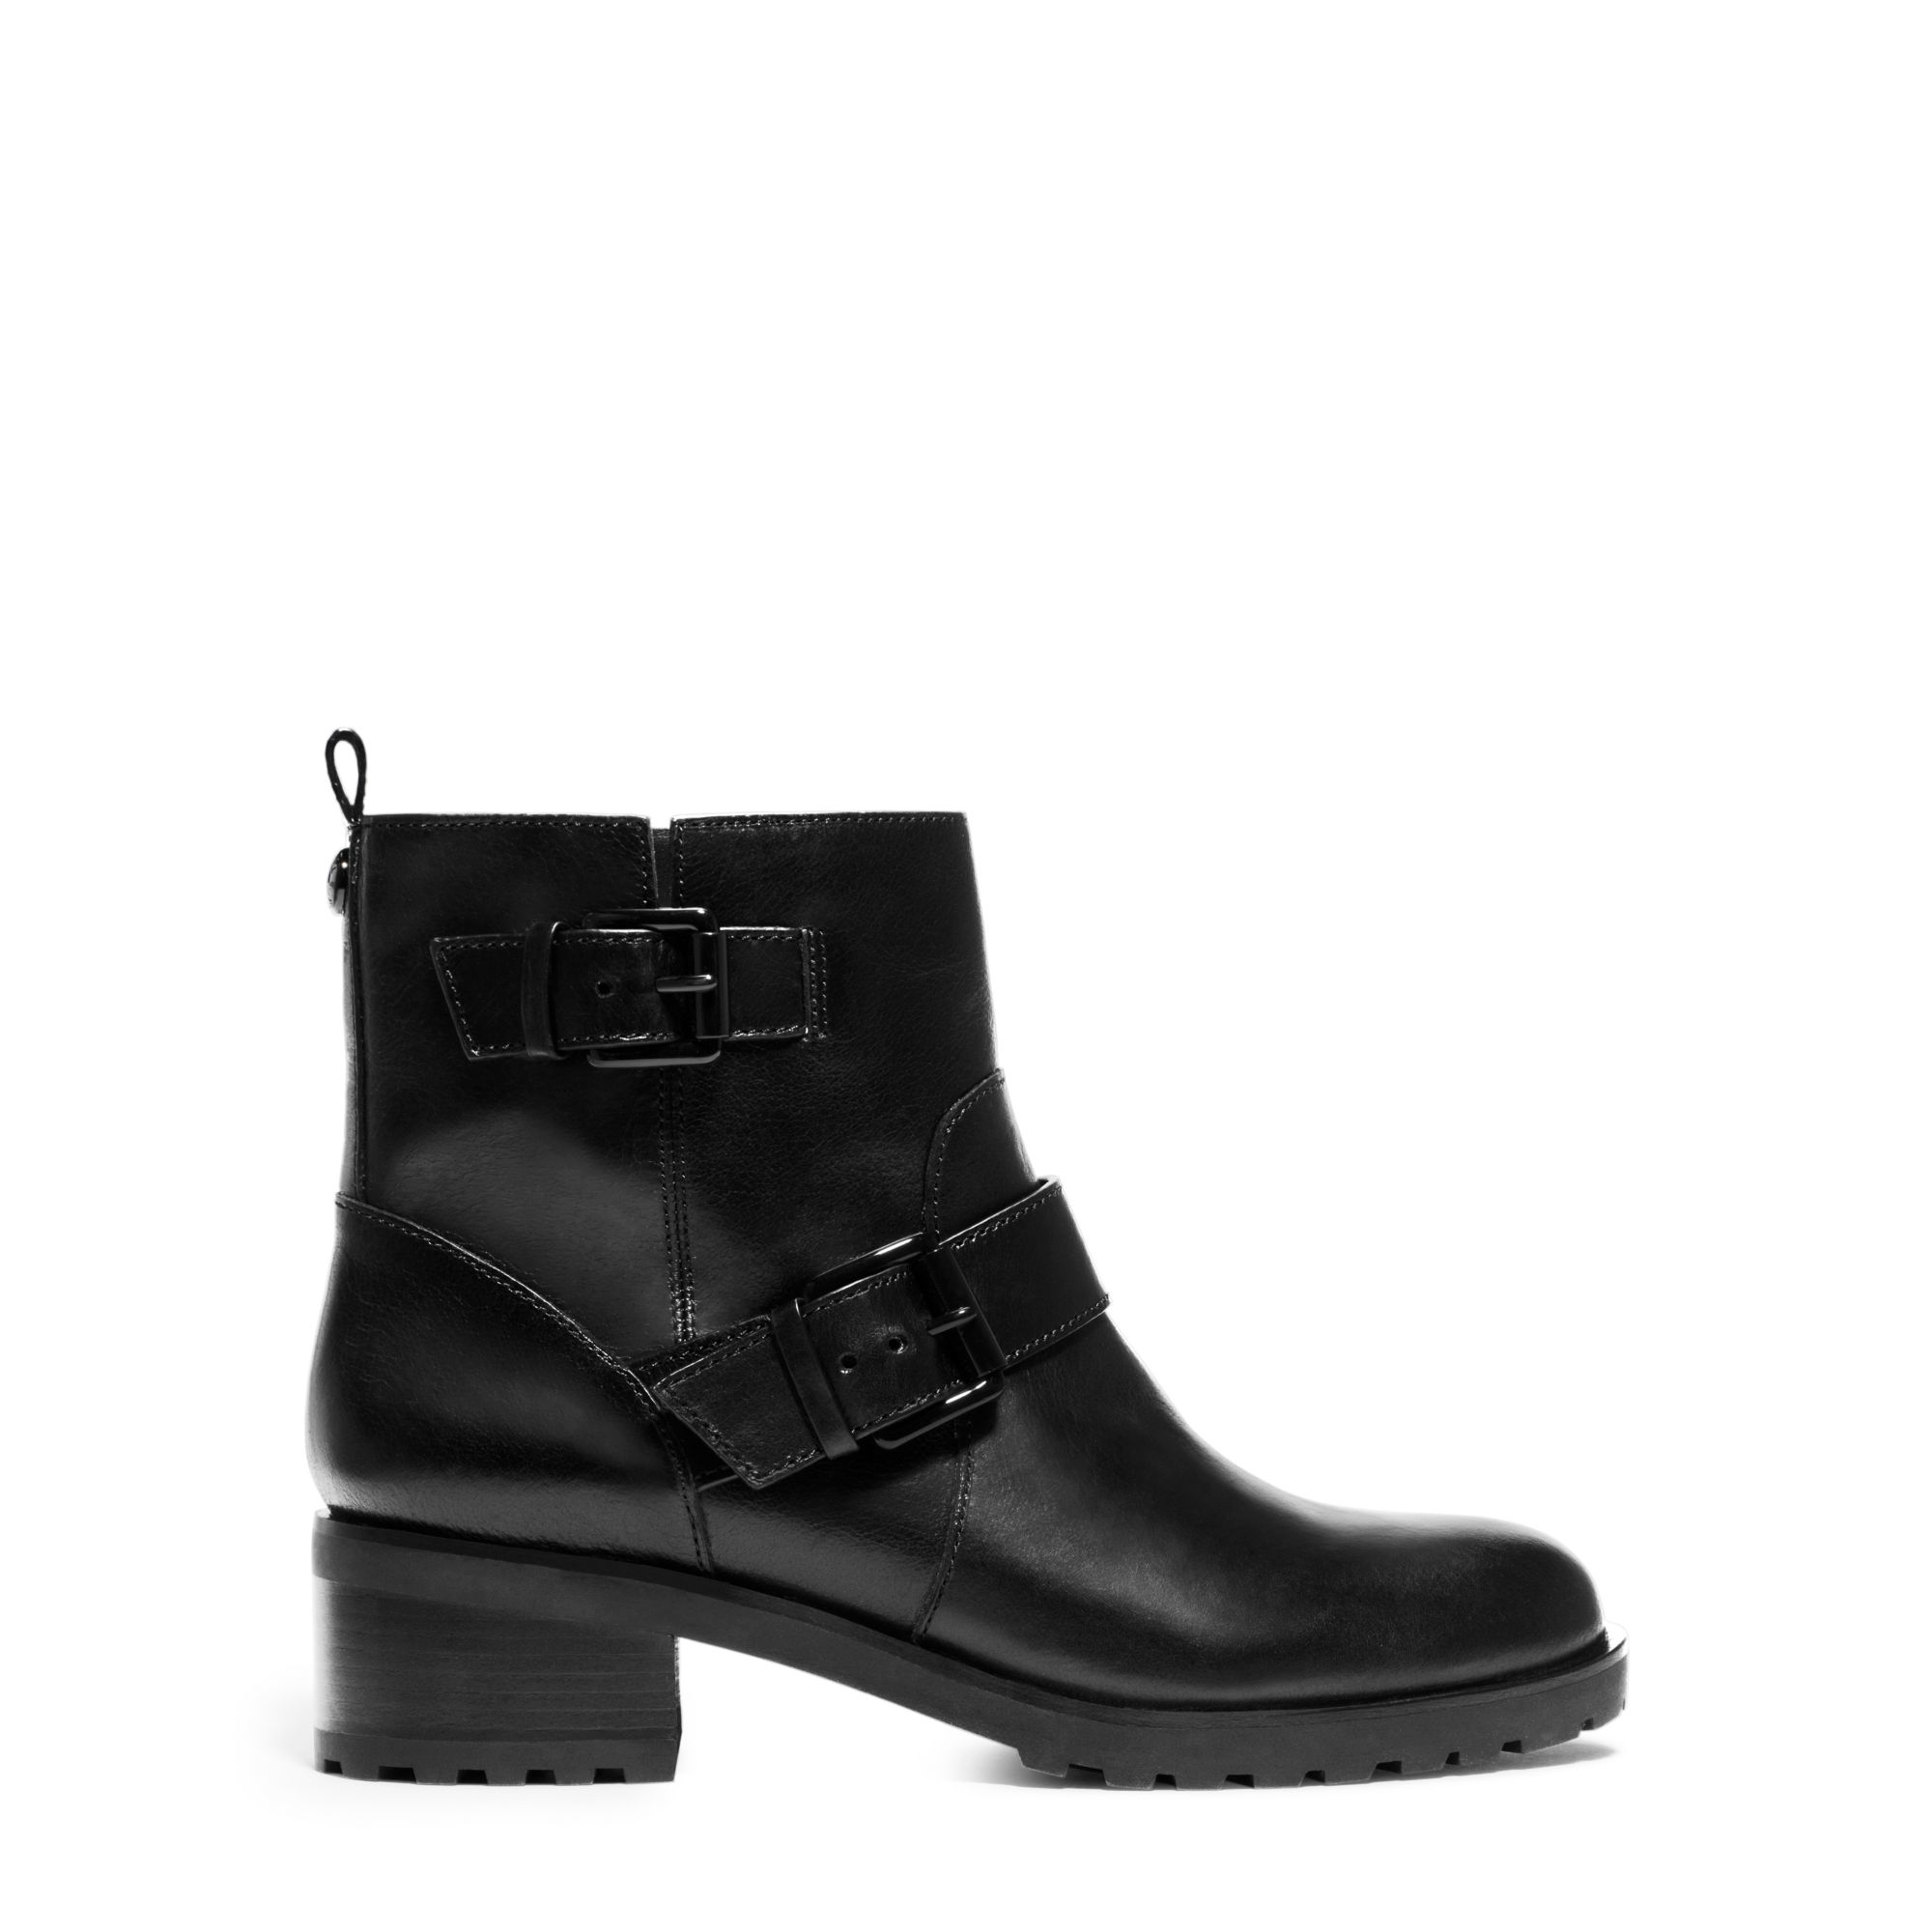 michael kors black gretchen leather ankle boot lyst